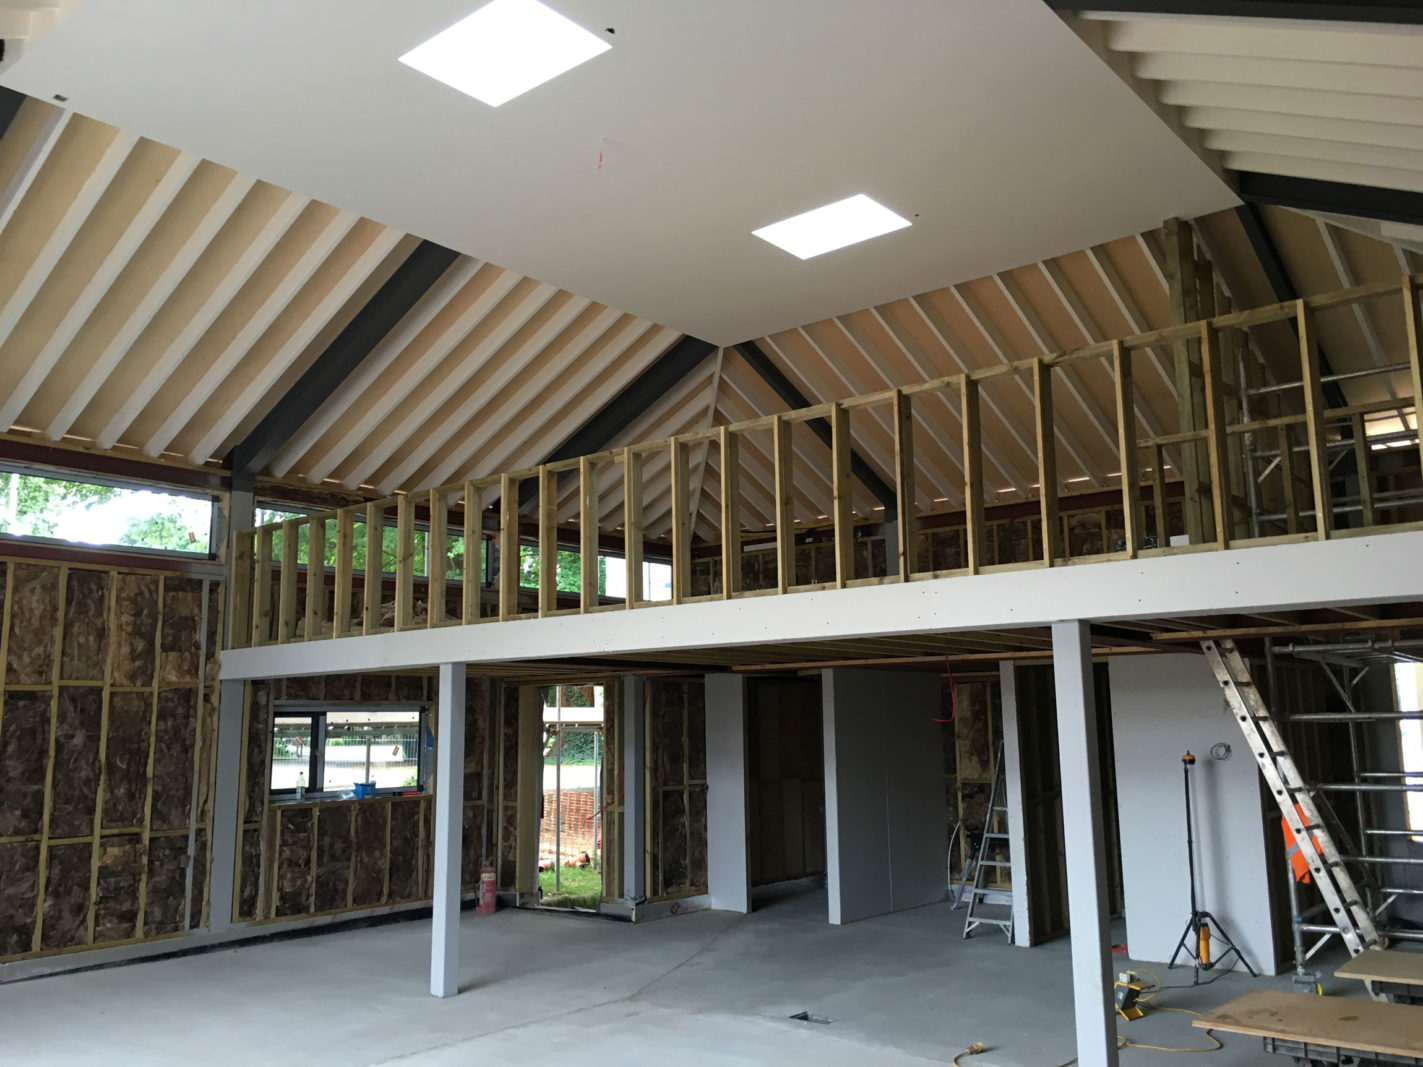 Kings College Taunton nears completion on site – Rud Sawers Architects, Devon